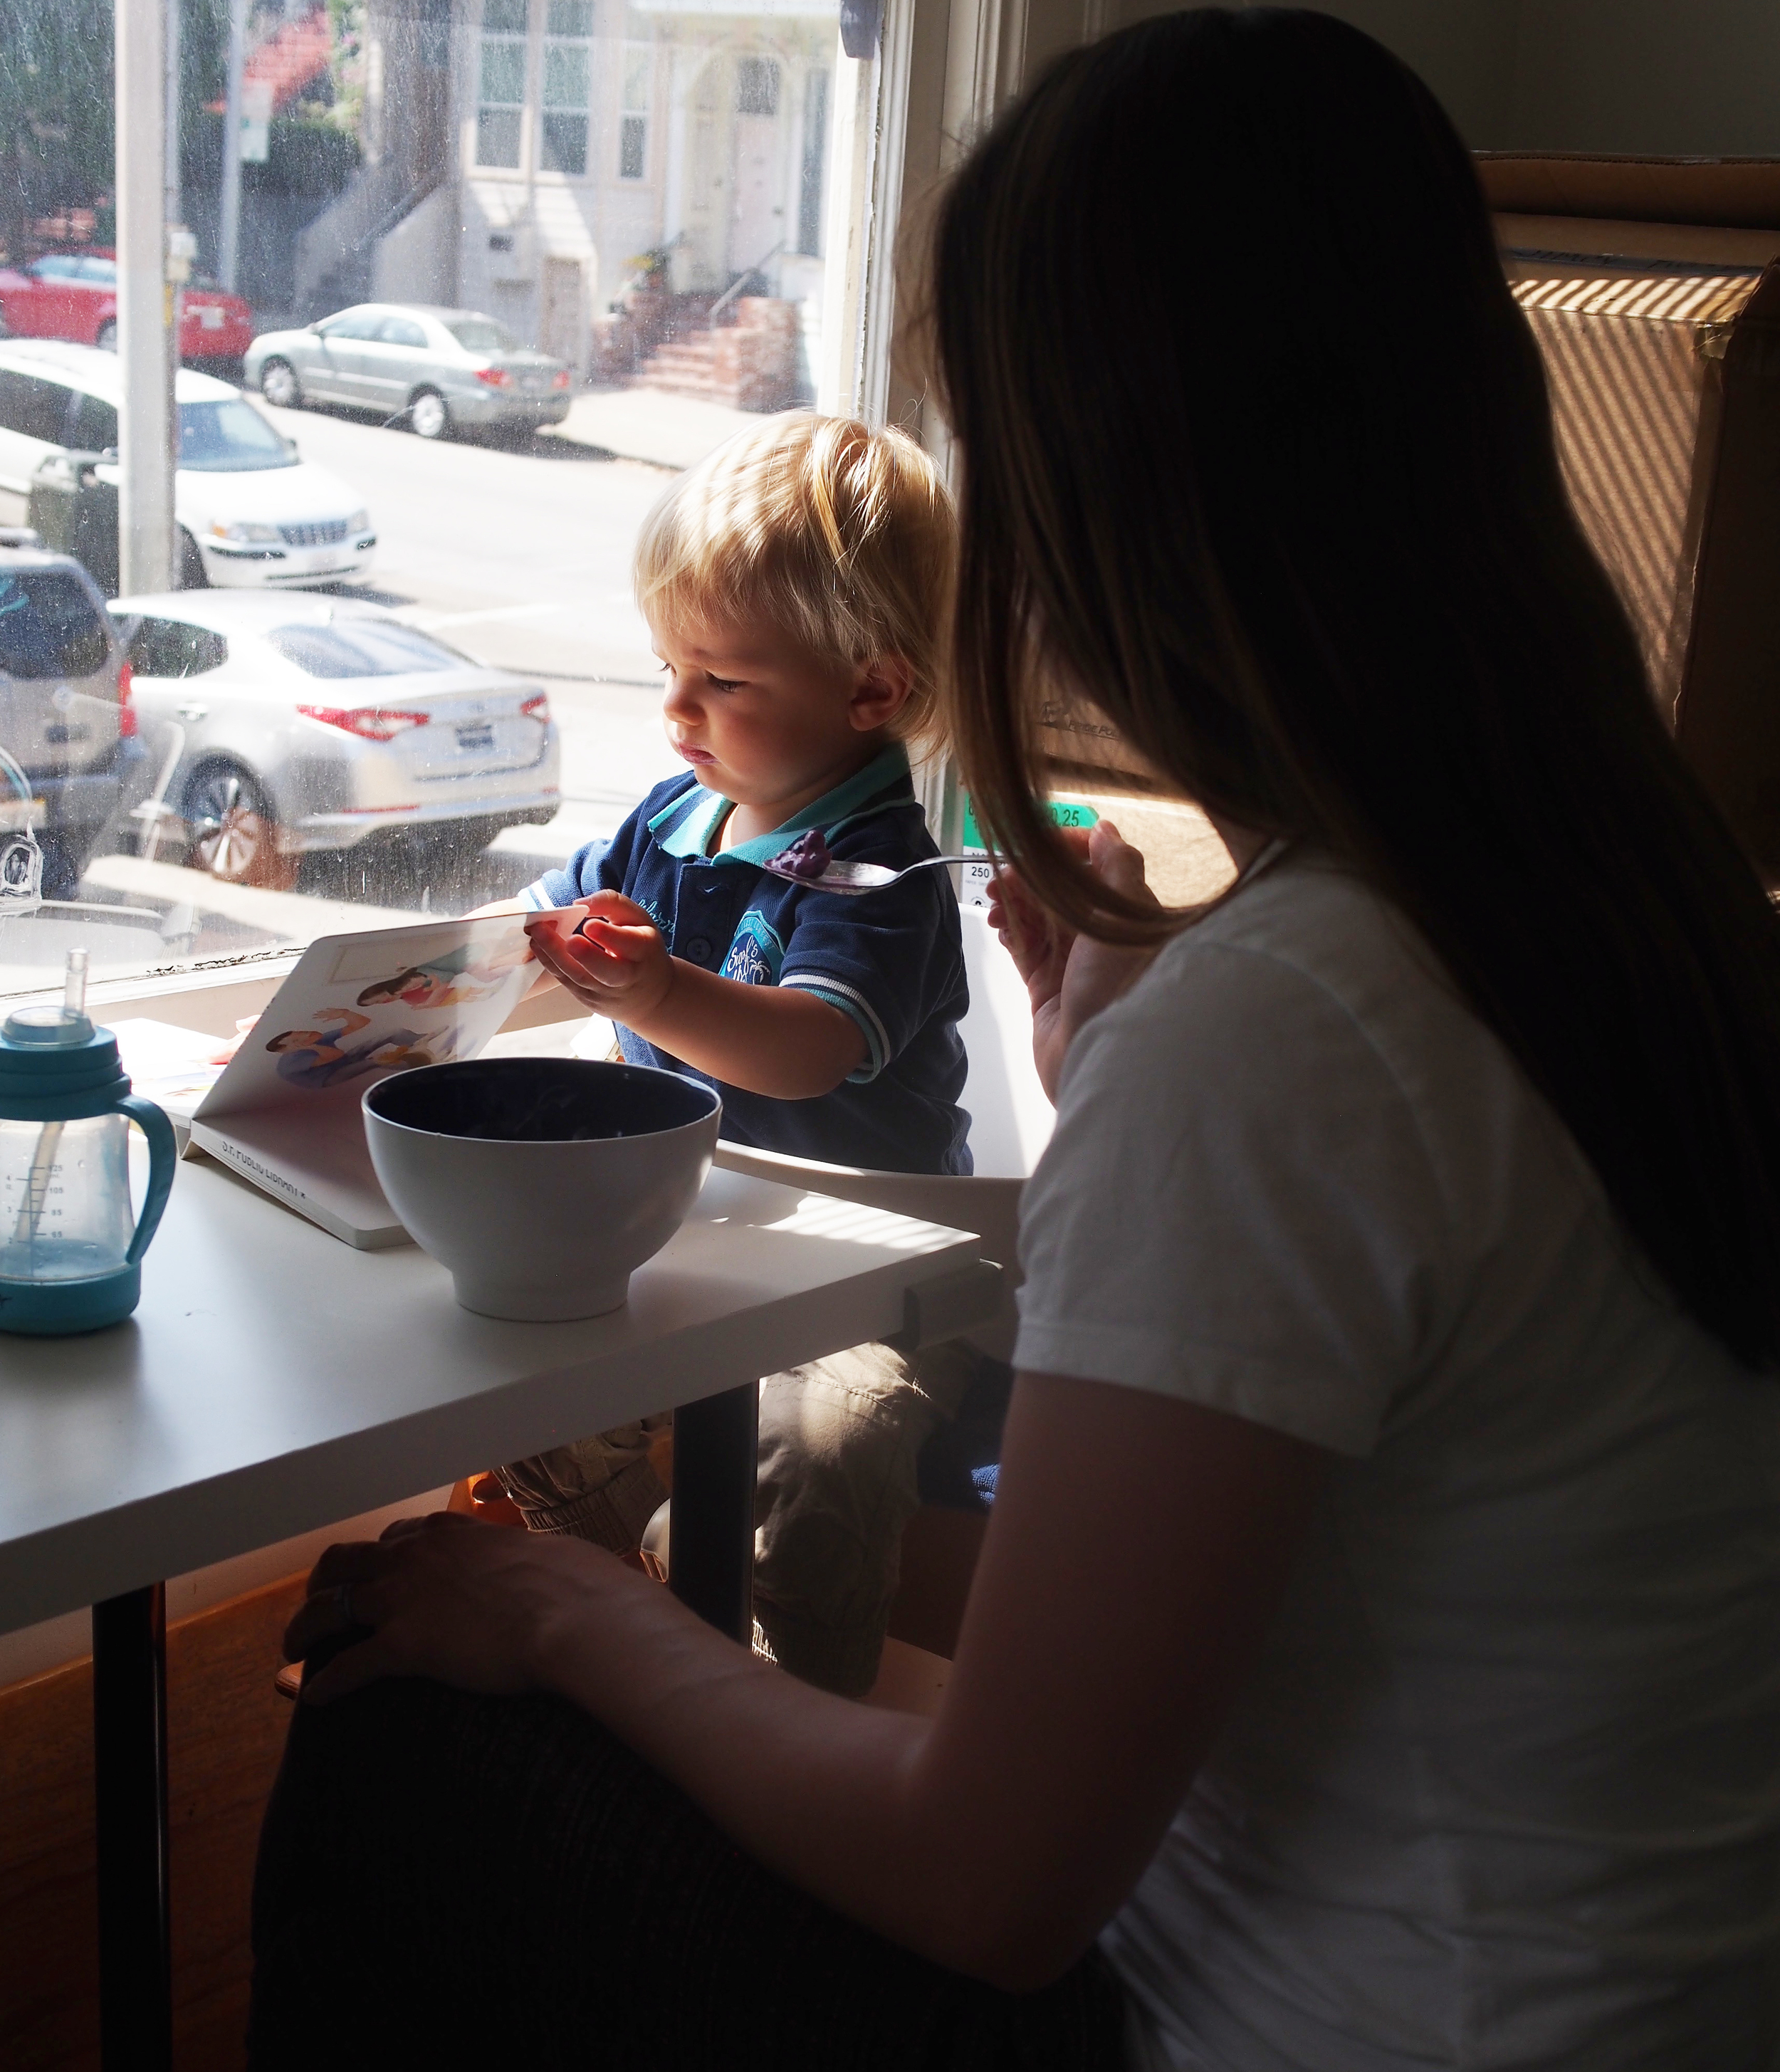 Snack time for Hunter. A second hand Stokke high chair and small table at the wall allow for a dedicated eating space.